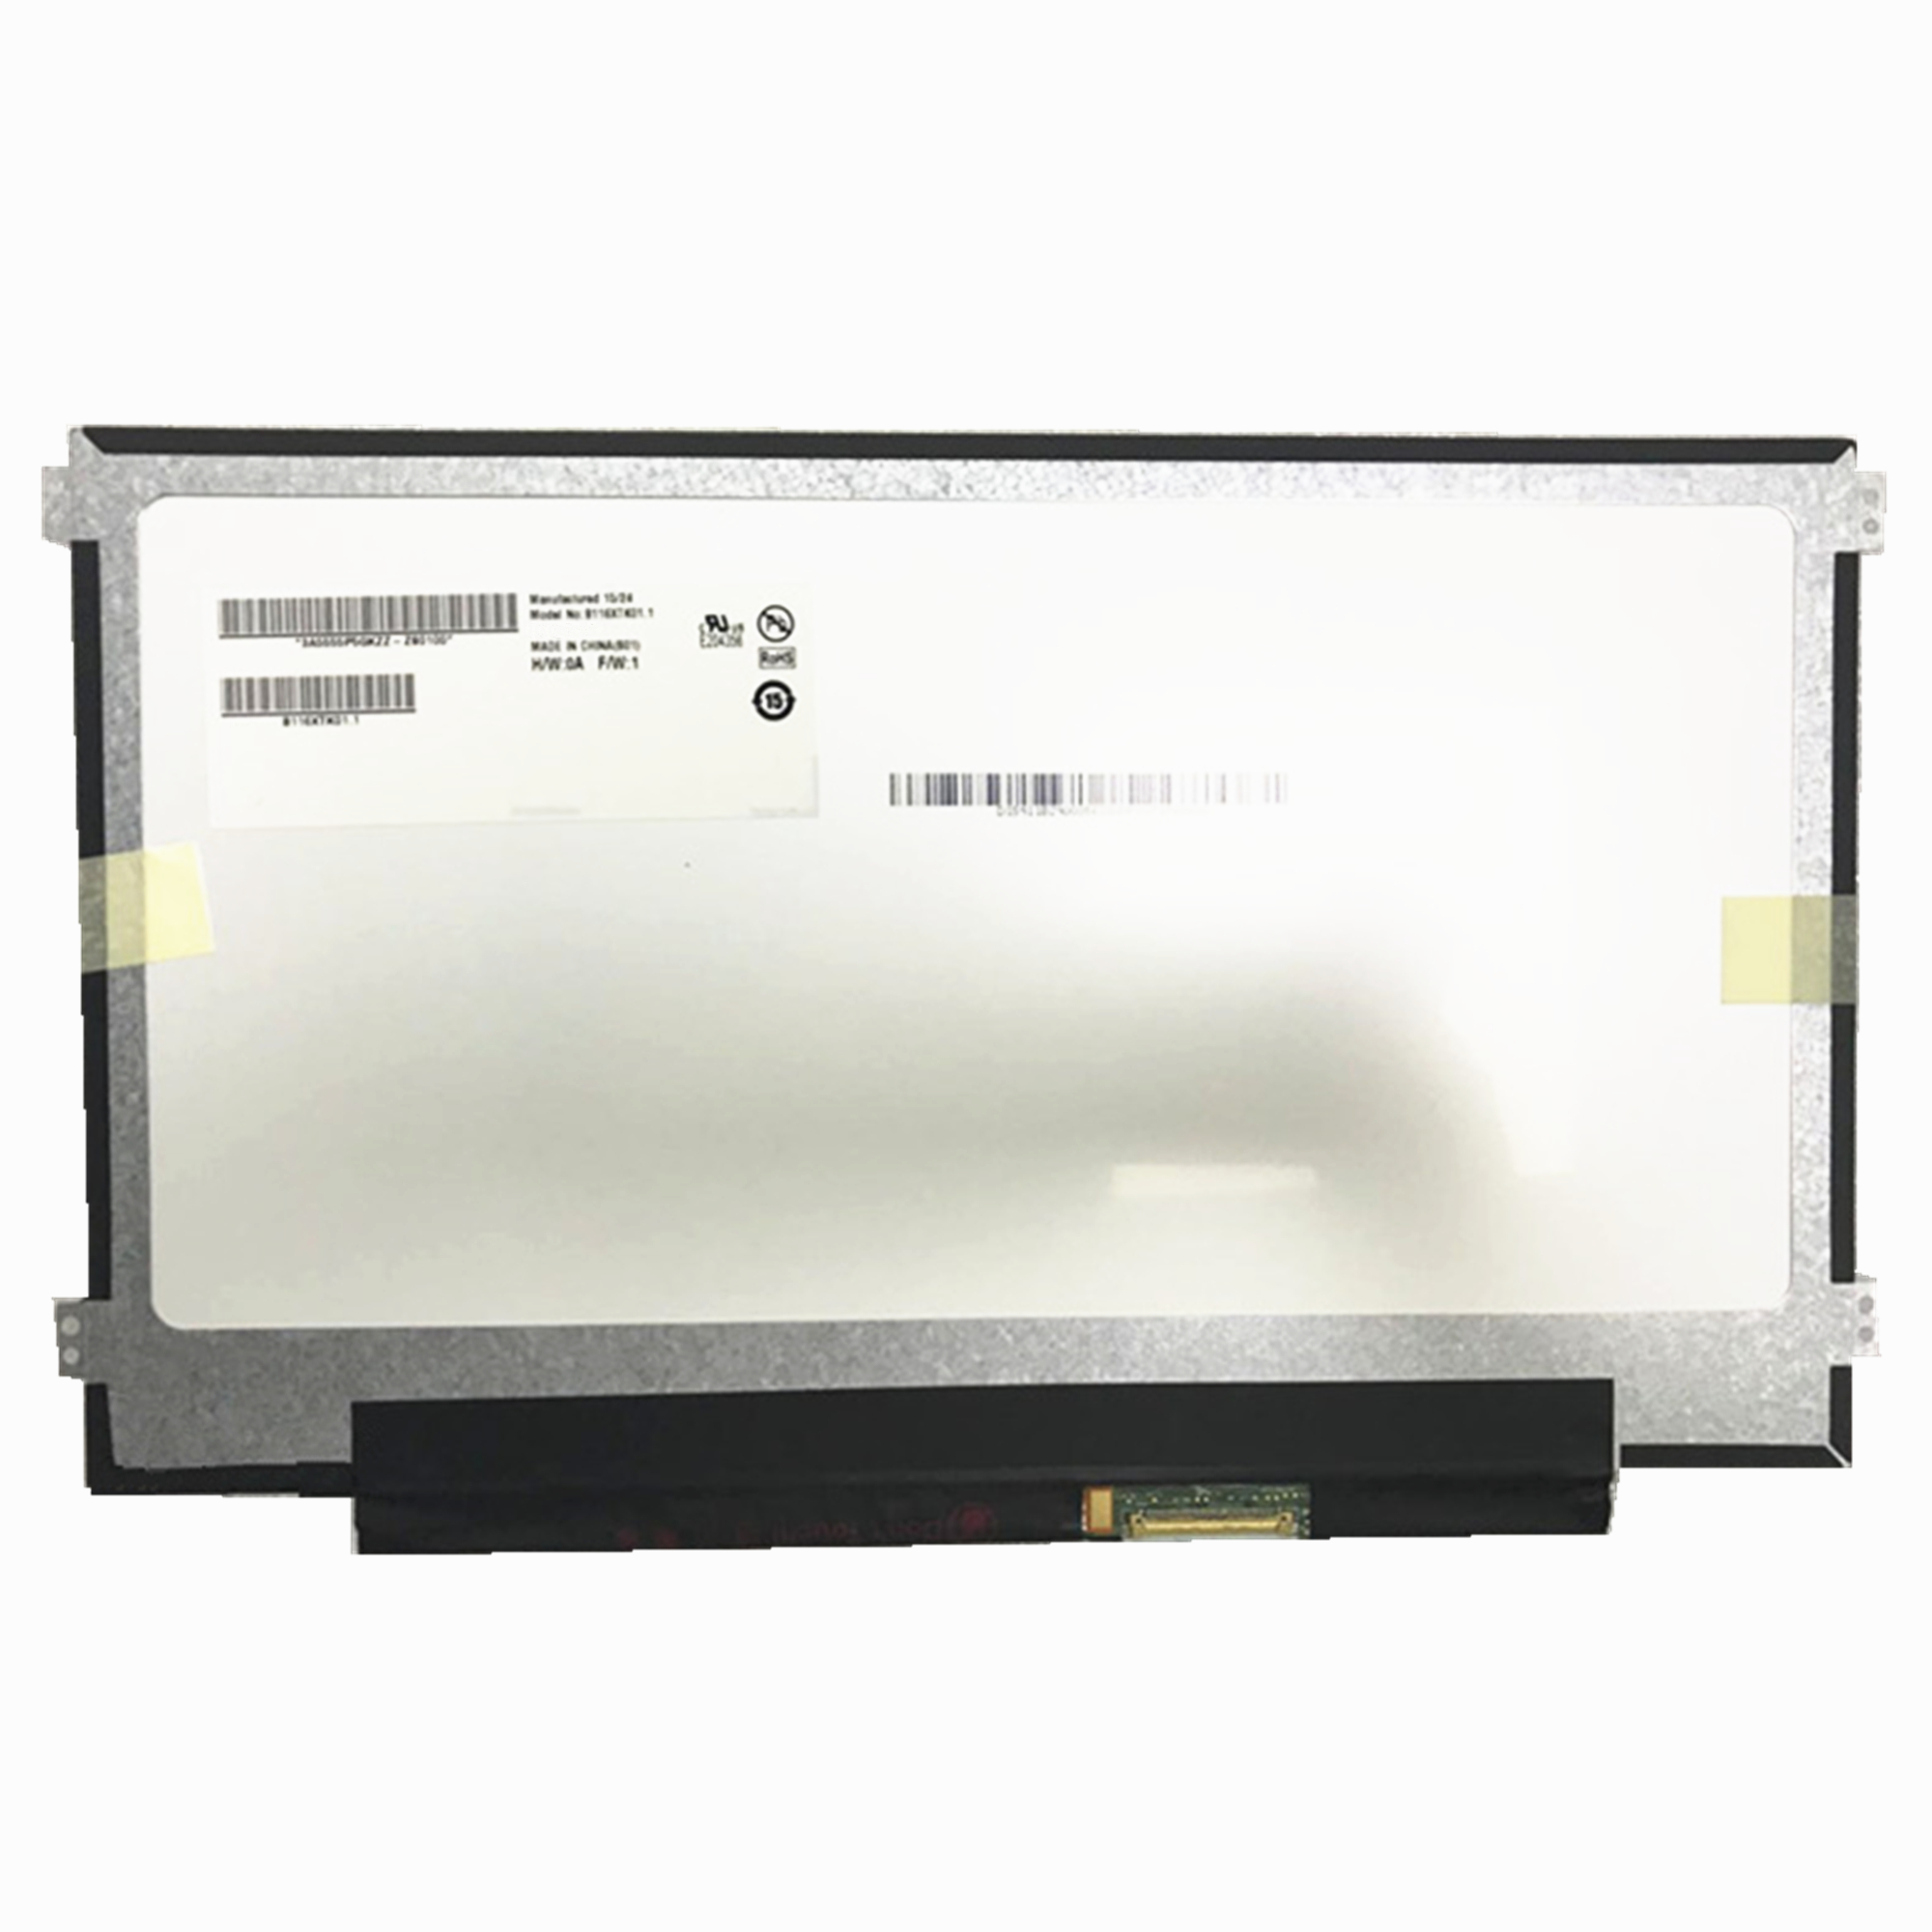 Free Shipping B116XTK01.1 11.6'' <font><b>Laptop</b></font> <font><b>Lcd</b></font> Touch Screen Panel 1366*768 EDP <font><b>40</b></font> <font><b>pins</b></font> with touch function image